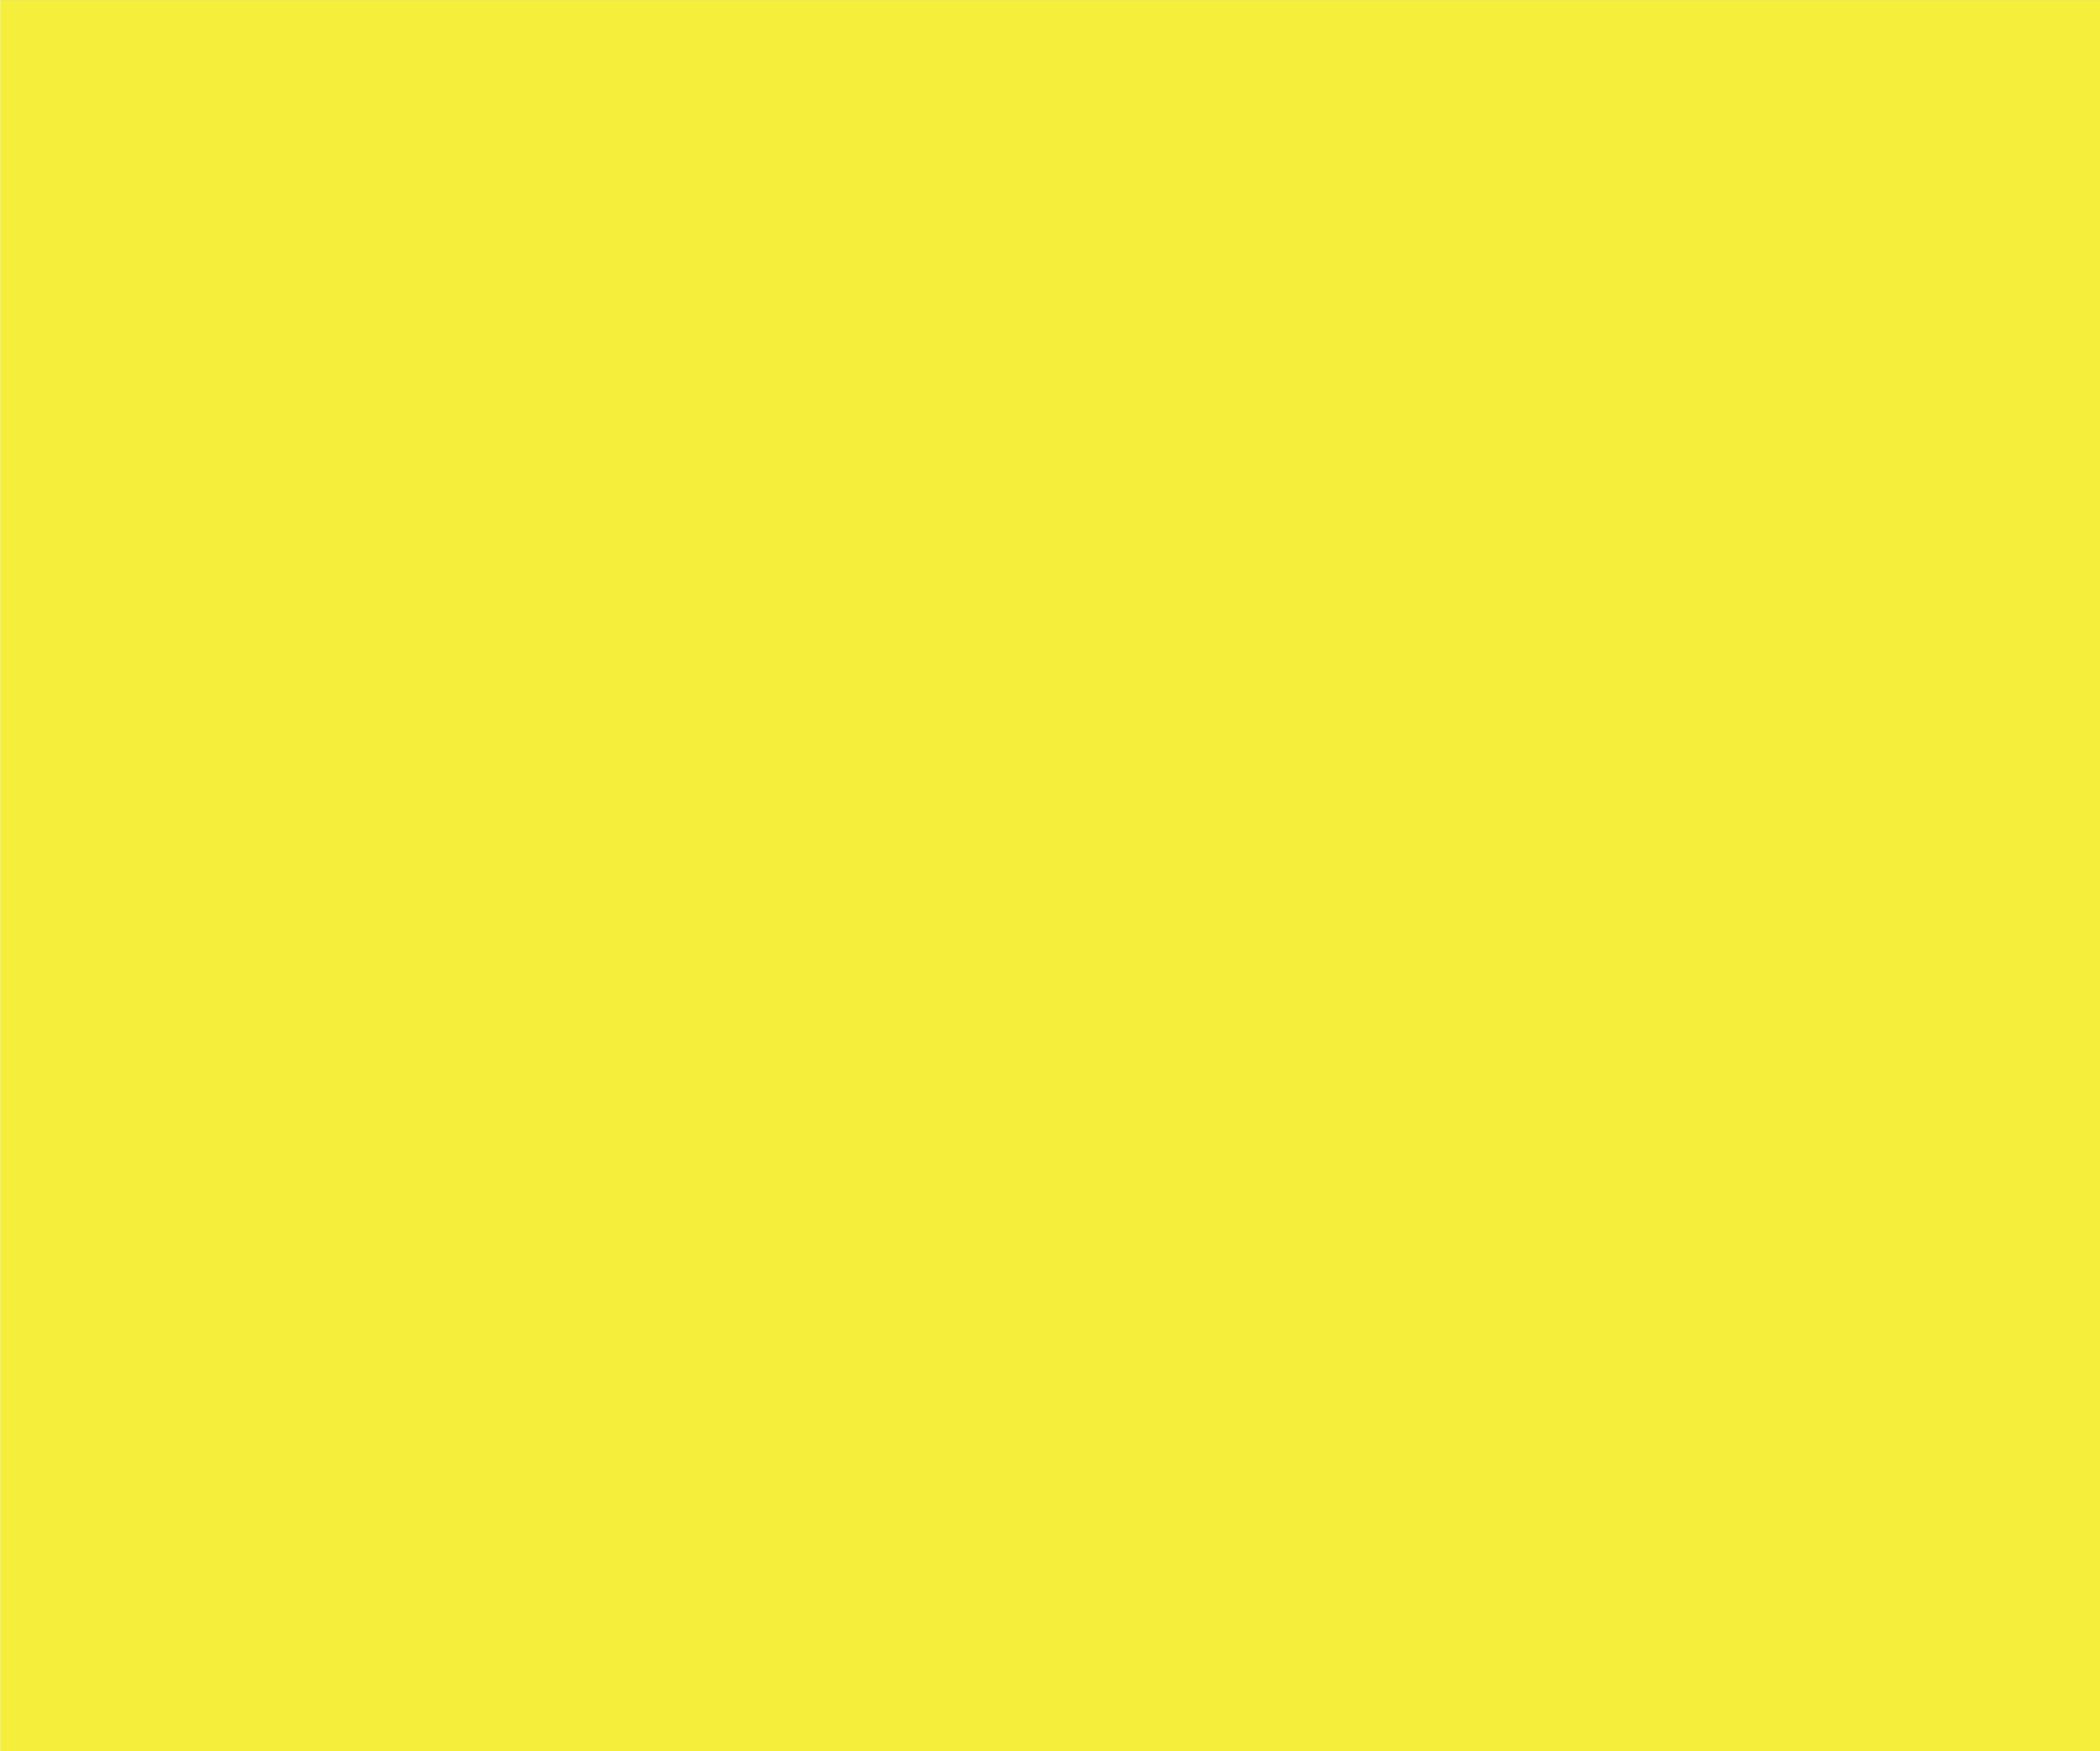 Yellow background-02.png